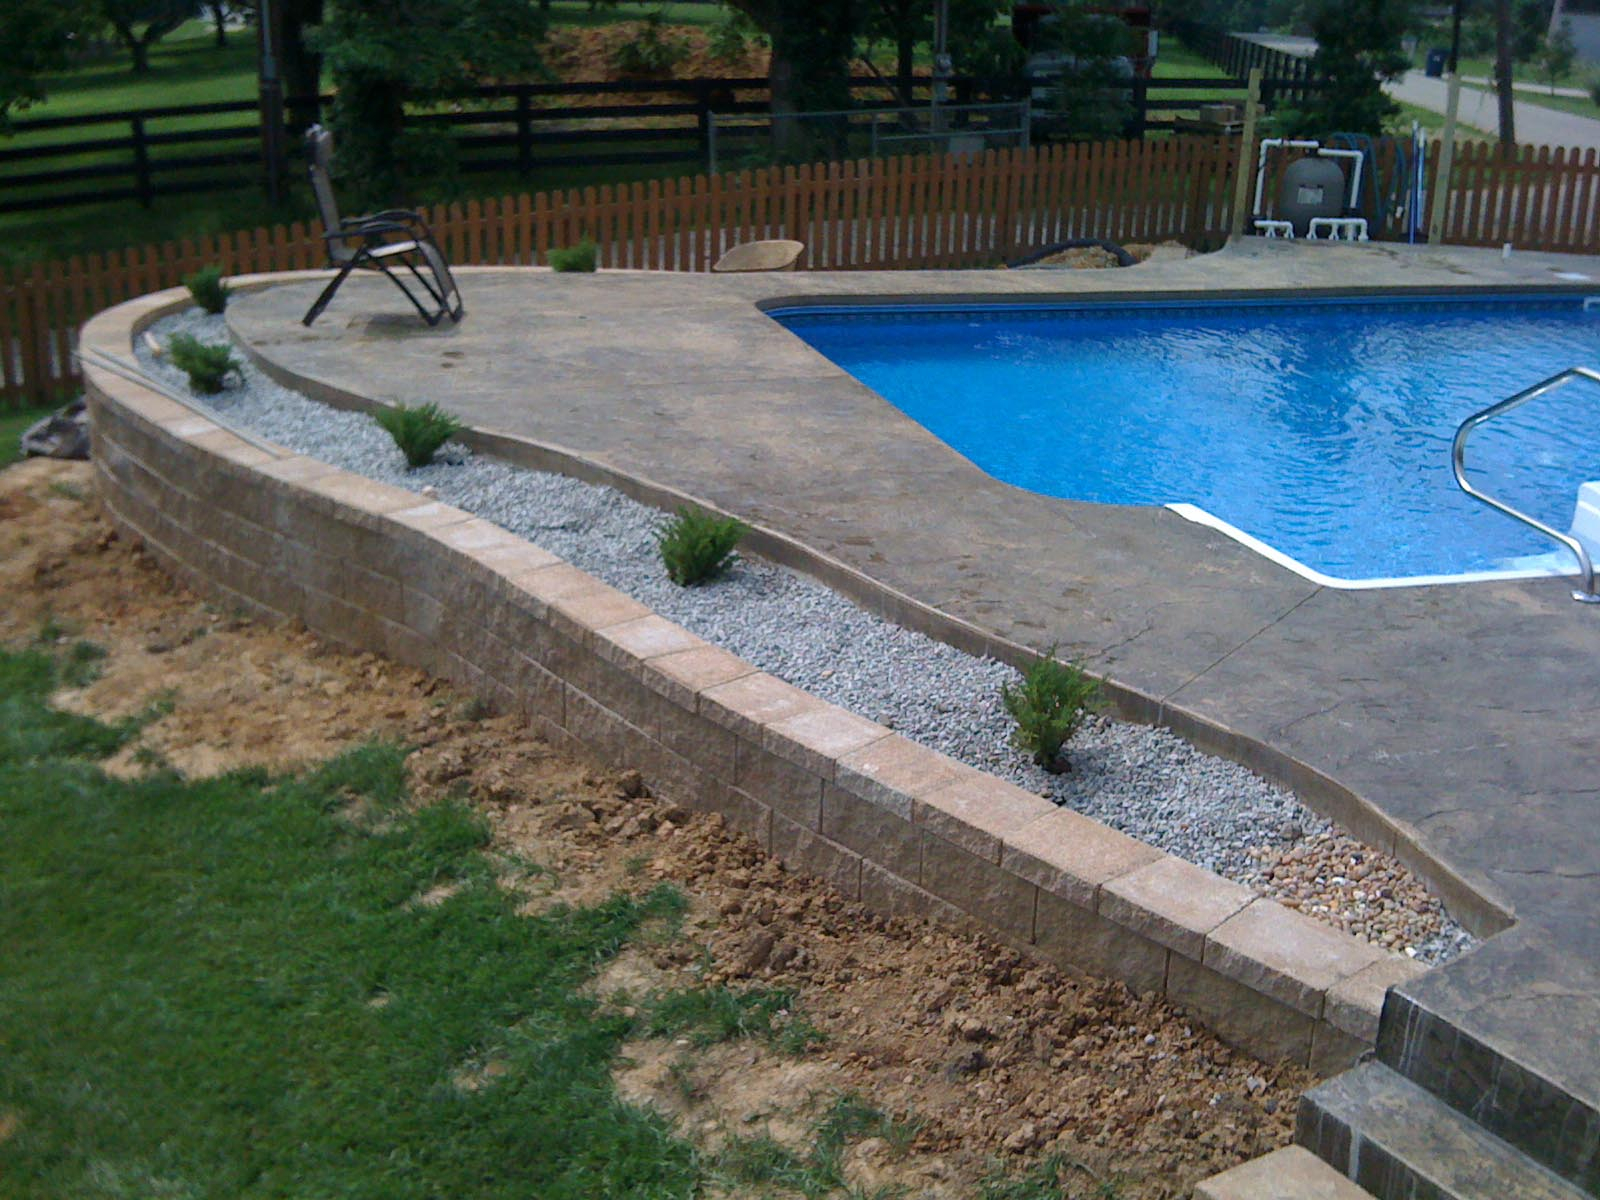 Backyard Pool Deck Ideas pool deck ideas for inground pools • decks ideas